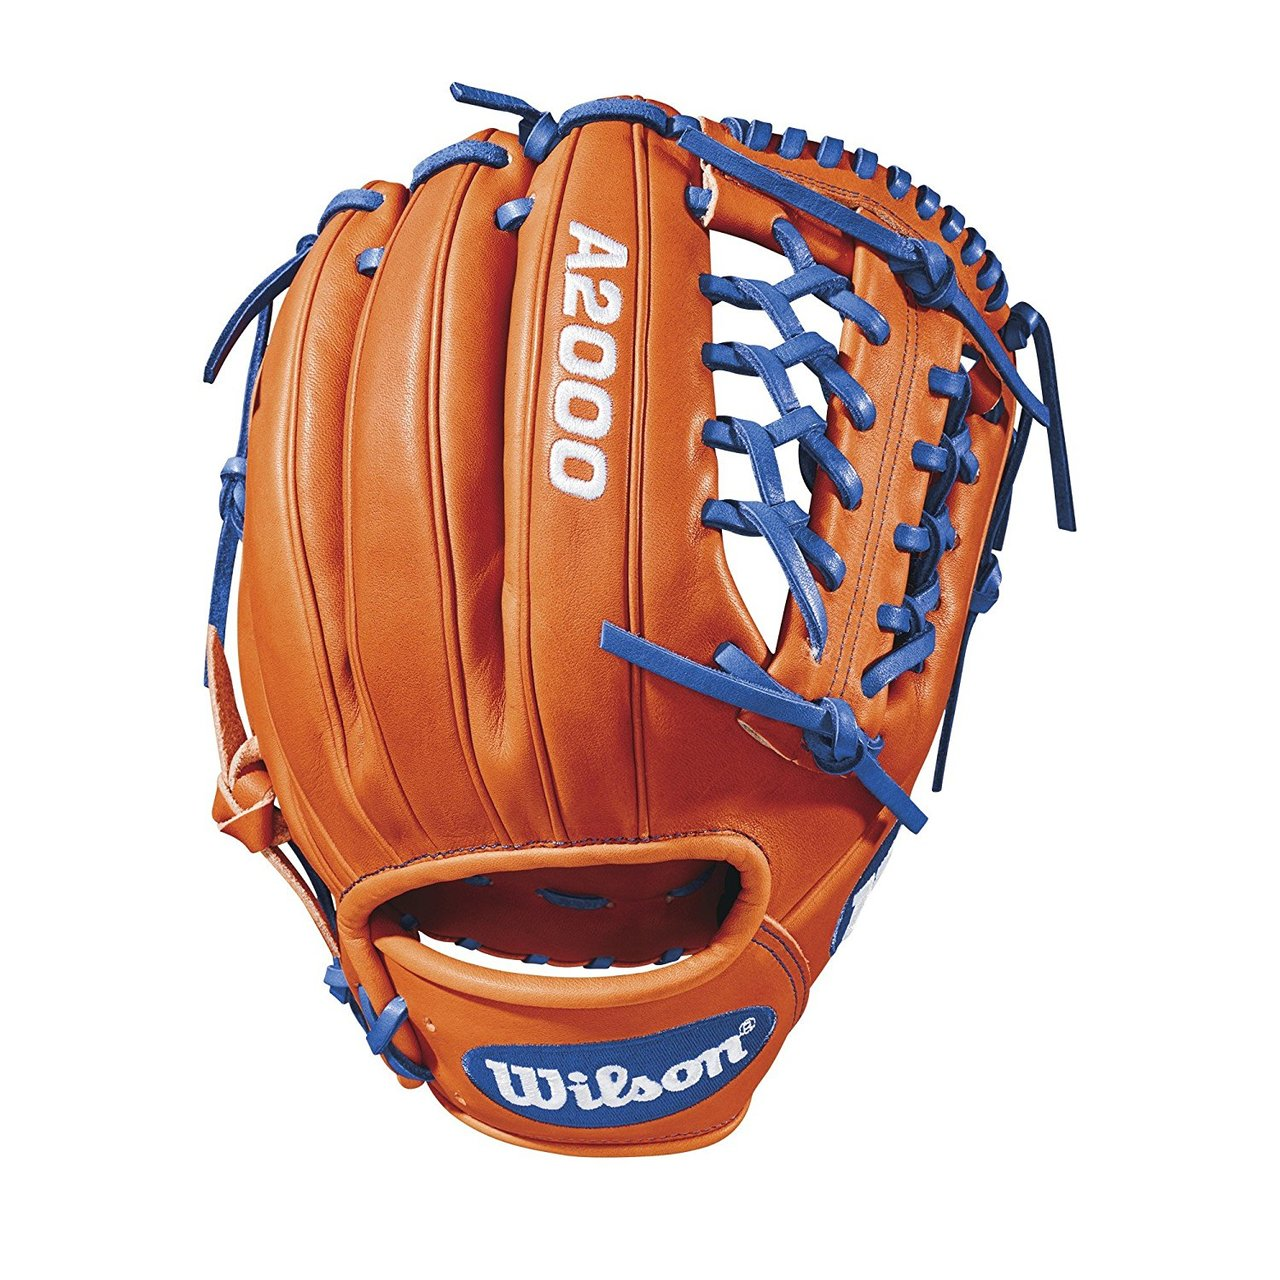 Own the diamond with the new A2000® 1789. With its 11.5 size and Pro Laced T-Web, this glove is perfect for infielders who also pitch. For infielders, its snug Fit™ allows the glove to feel like an extension of their hand, giving little wasted movement. As for pitchers, the T-Web conceals a pitcher's grip from hitters. With a flashy Orange Tan and Royal Pro Stock Leather design, this glove gives you everything you need to conquer the field.  The Wilson A2000®, the most famous baseball glove in the game, continues to improve. Master Craftsman Shigeaki Aso and his glove team are constantly refining Pro Stock patterns with the insights of players from back fields to Major League stadiums to bring the best possible product to the diamond. Made with Pro Stock leather identified specifically for Wilson gloves for its durability and unmatched feel, A2000®s are built to break in perfectly and last for multiple seasons. It's the perfect ball glove for hard-working players.